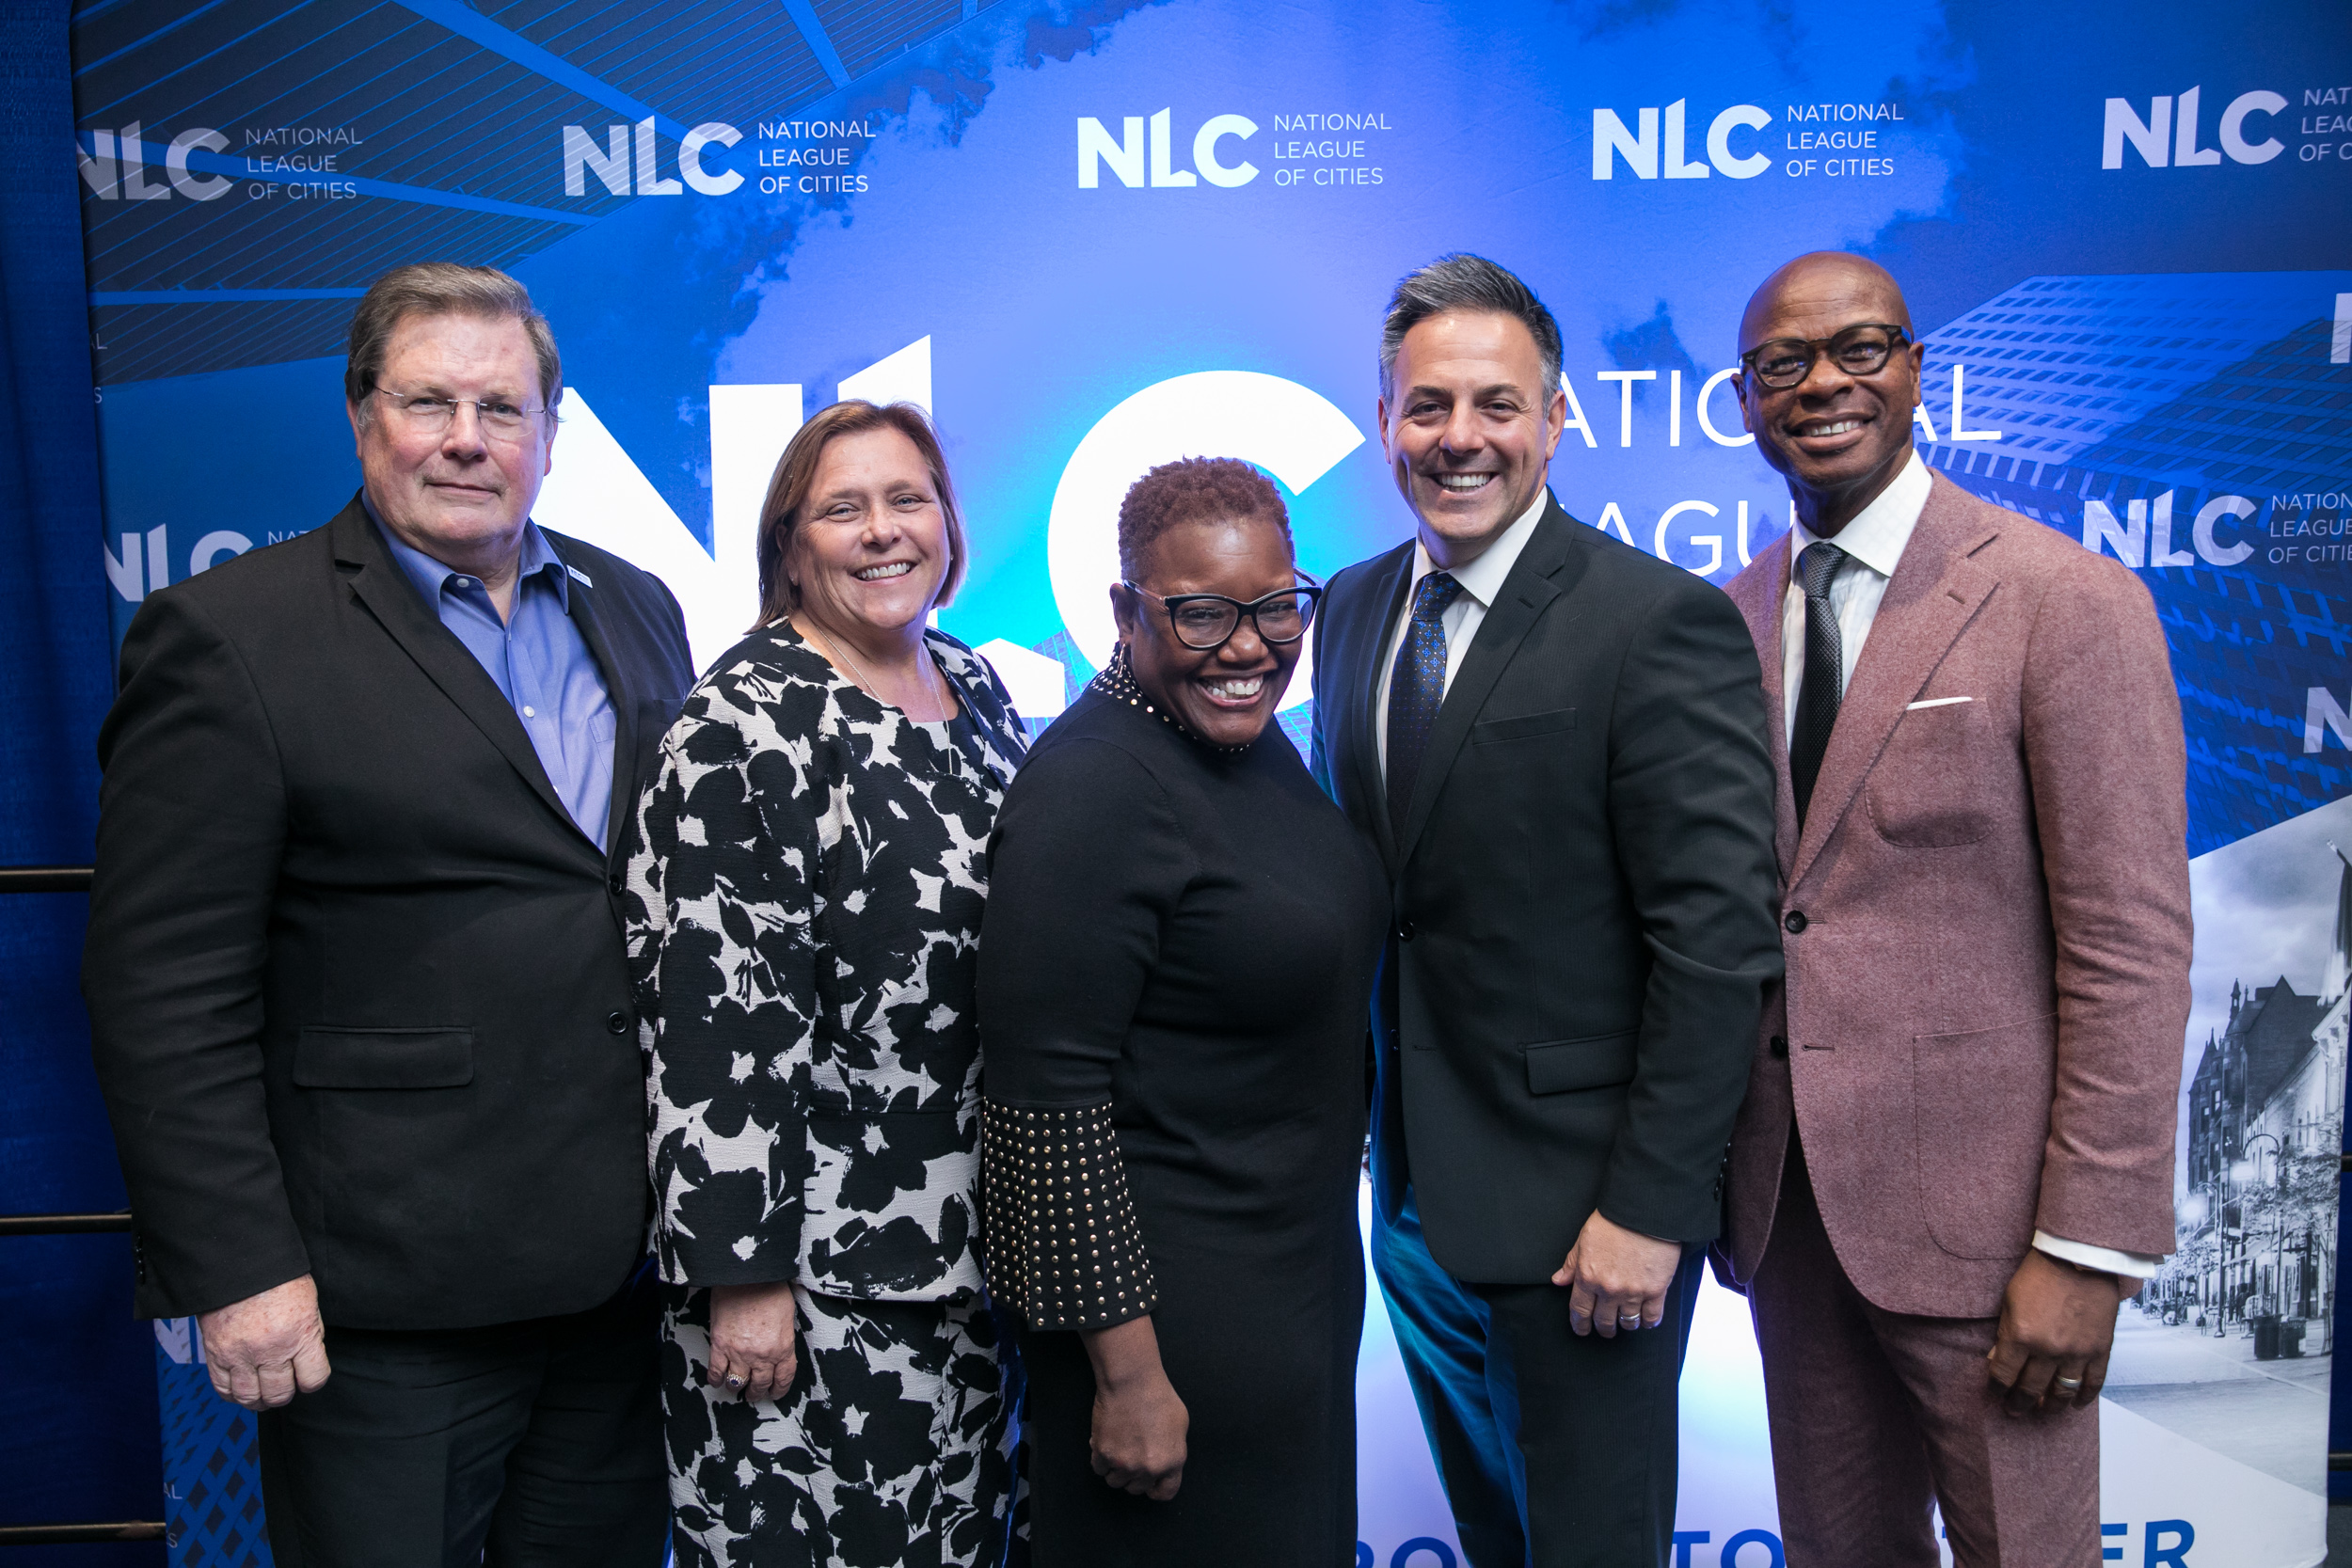 NLC Officers